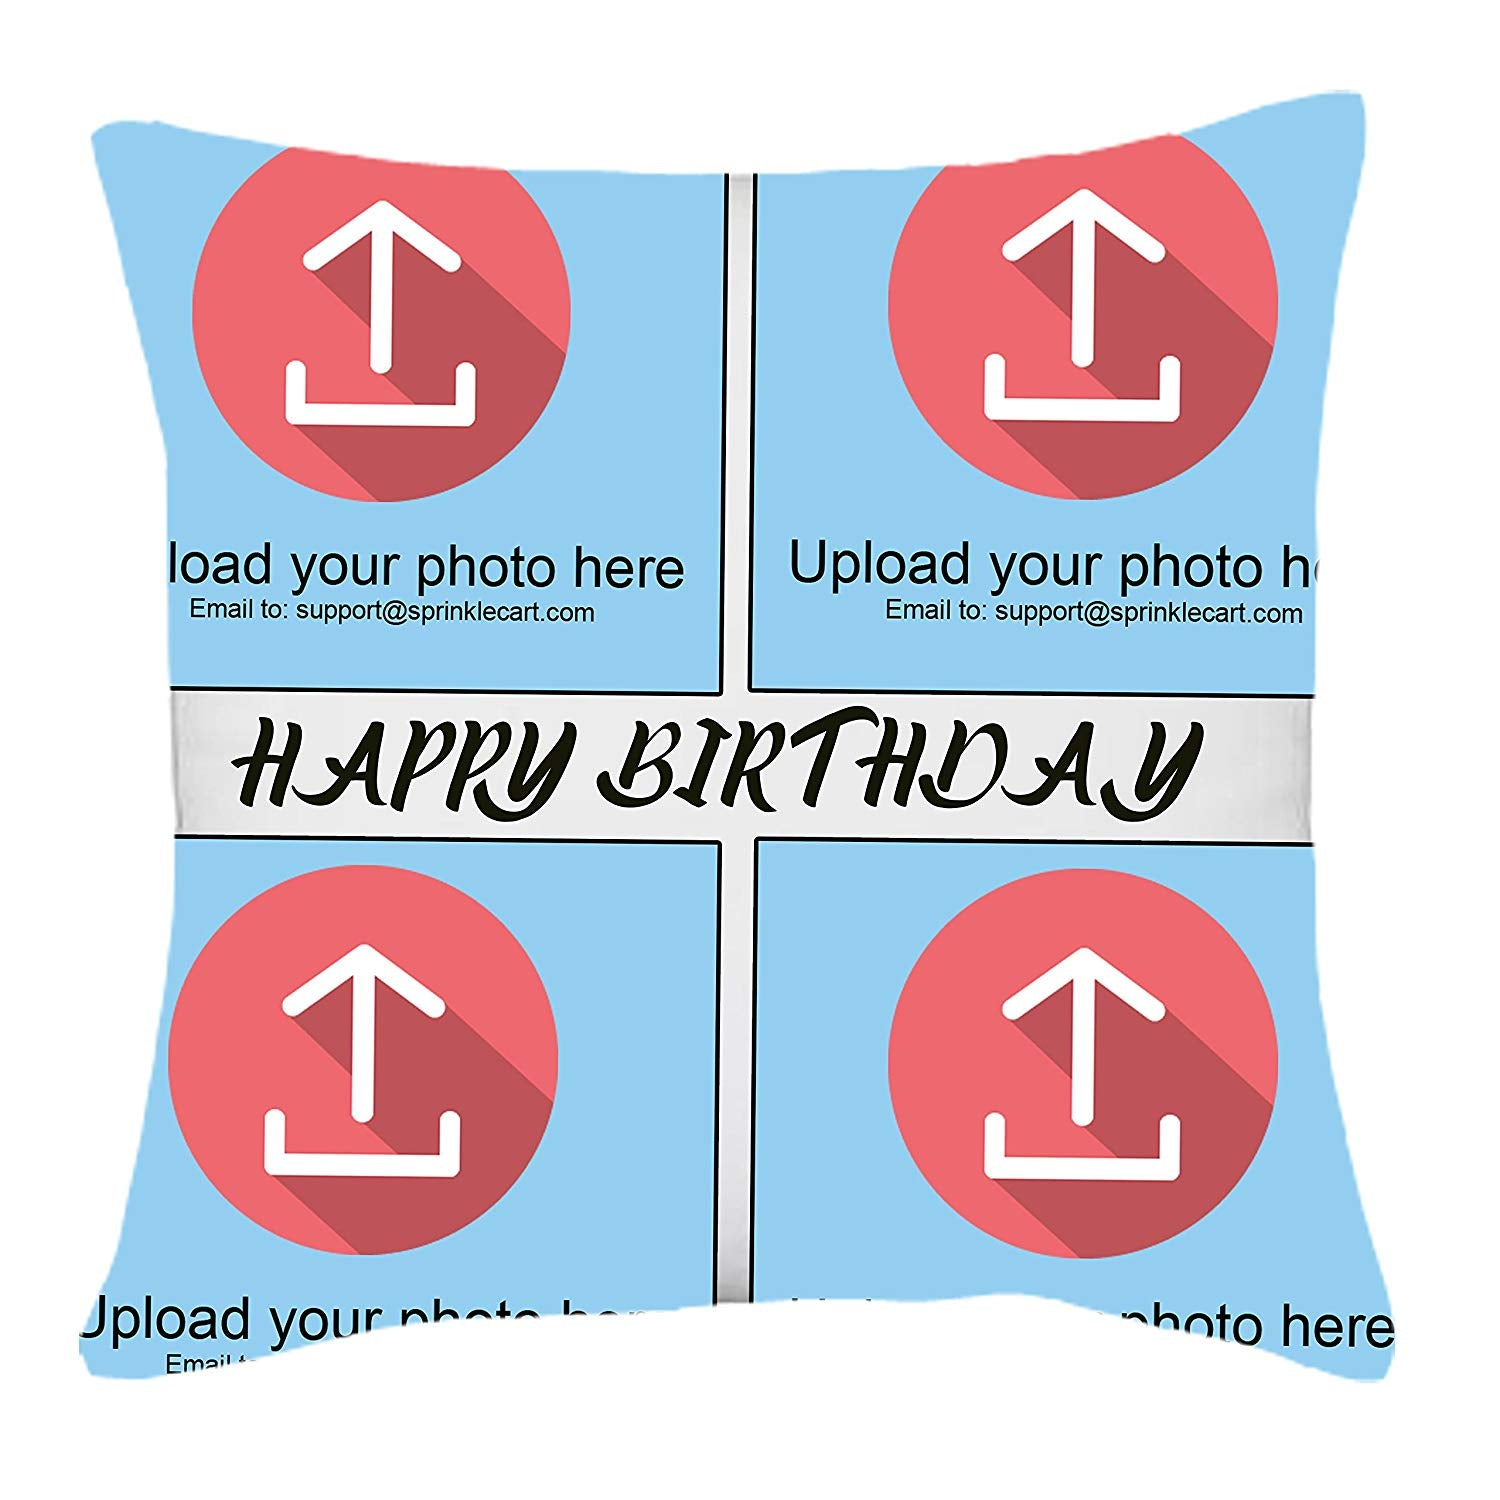 15″ x 15″ Inches | Sprinklecart's Personalized Photo Printed Special Happy Birthday Gift Cushion for Your Loved One